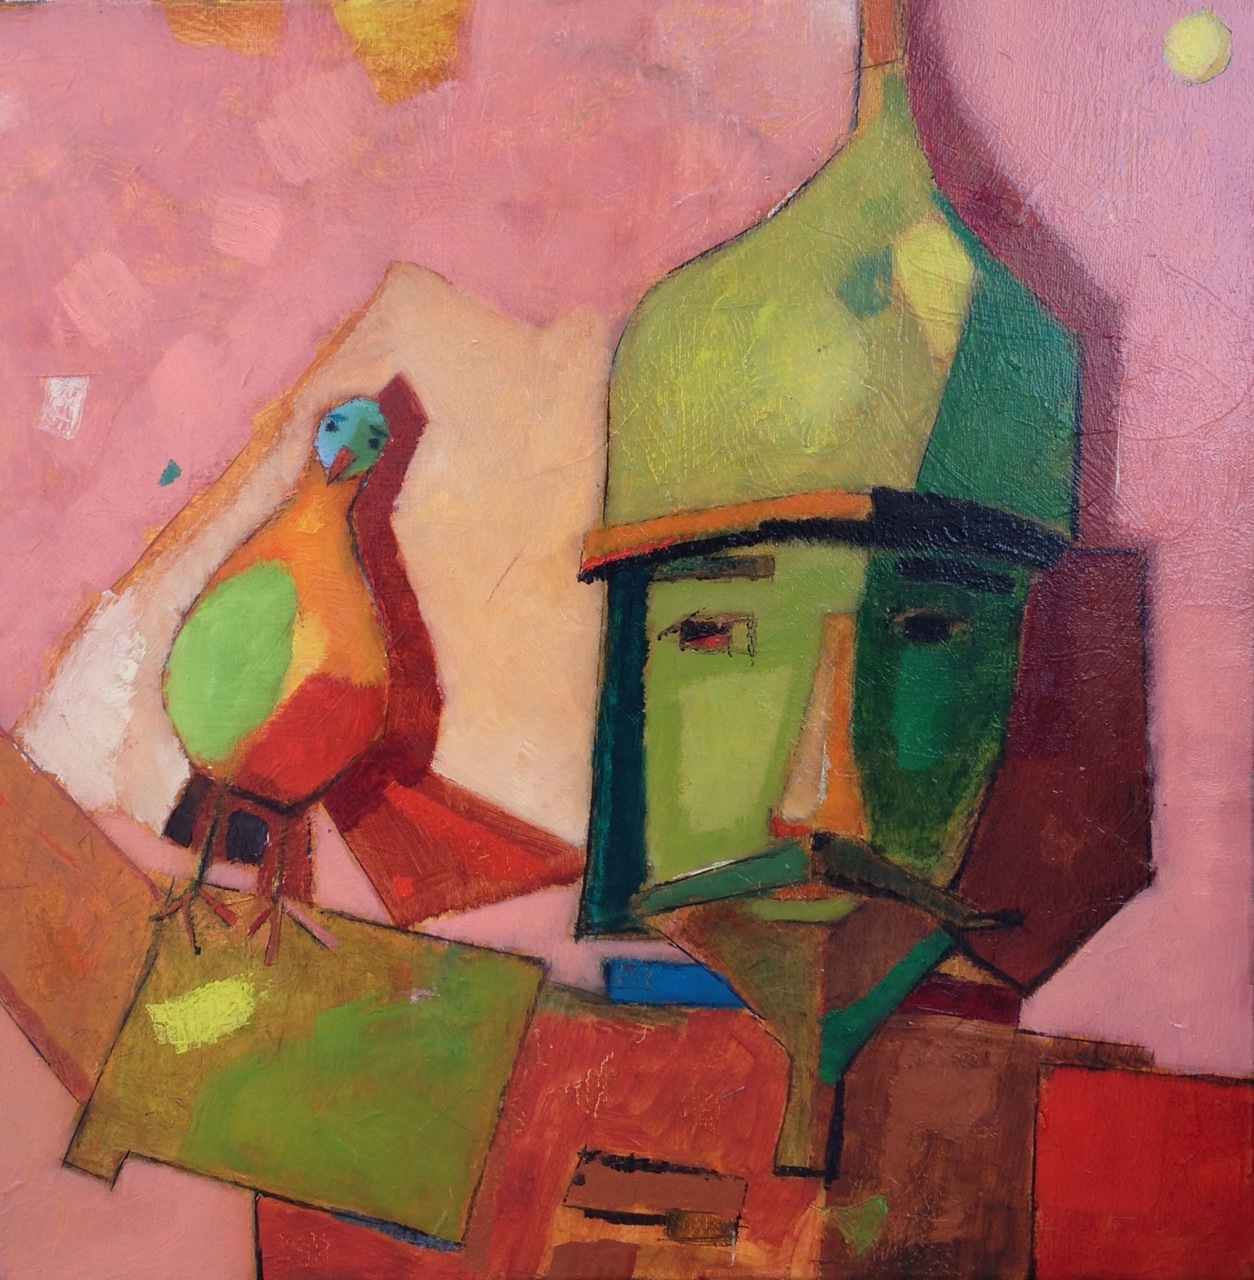 Pigeon of Dobo / Dobó galambja / 50x50cm, oil on canvas, 2013. Peter Jakab Szőke